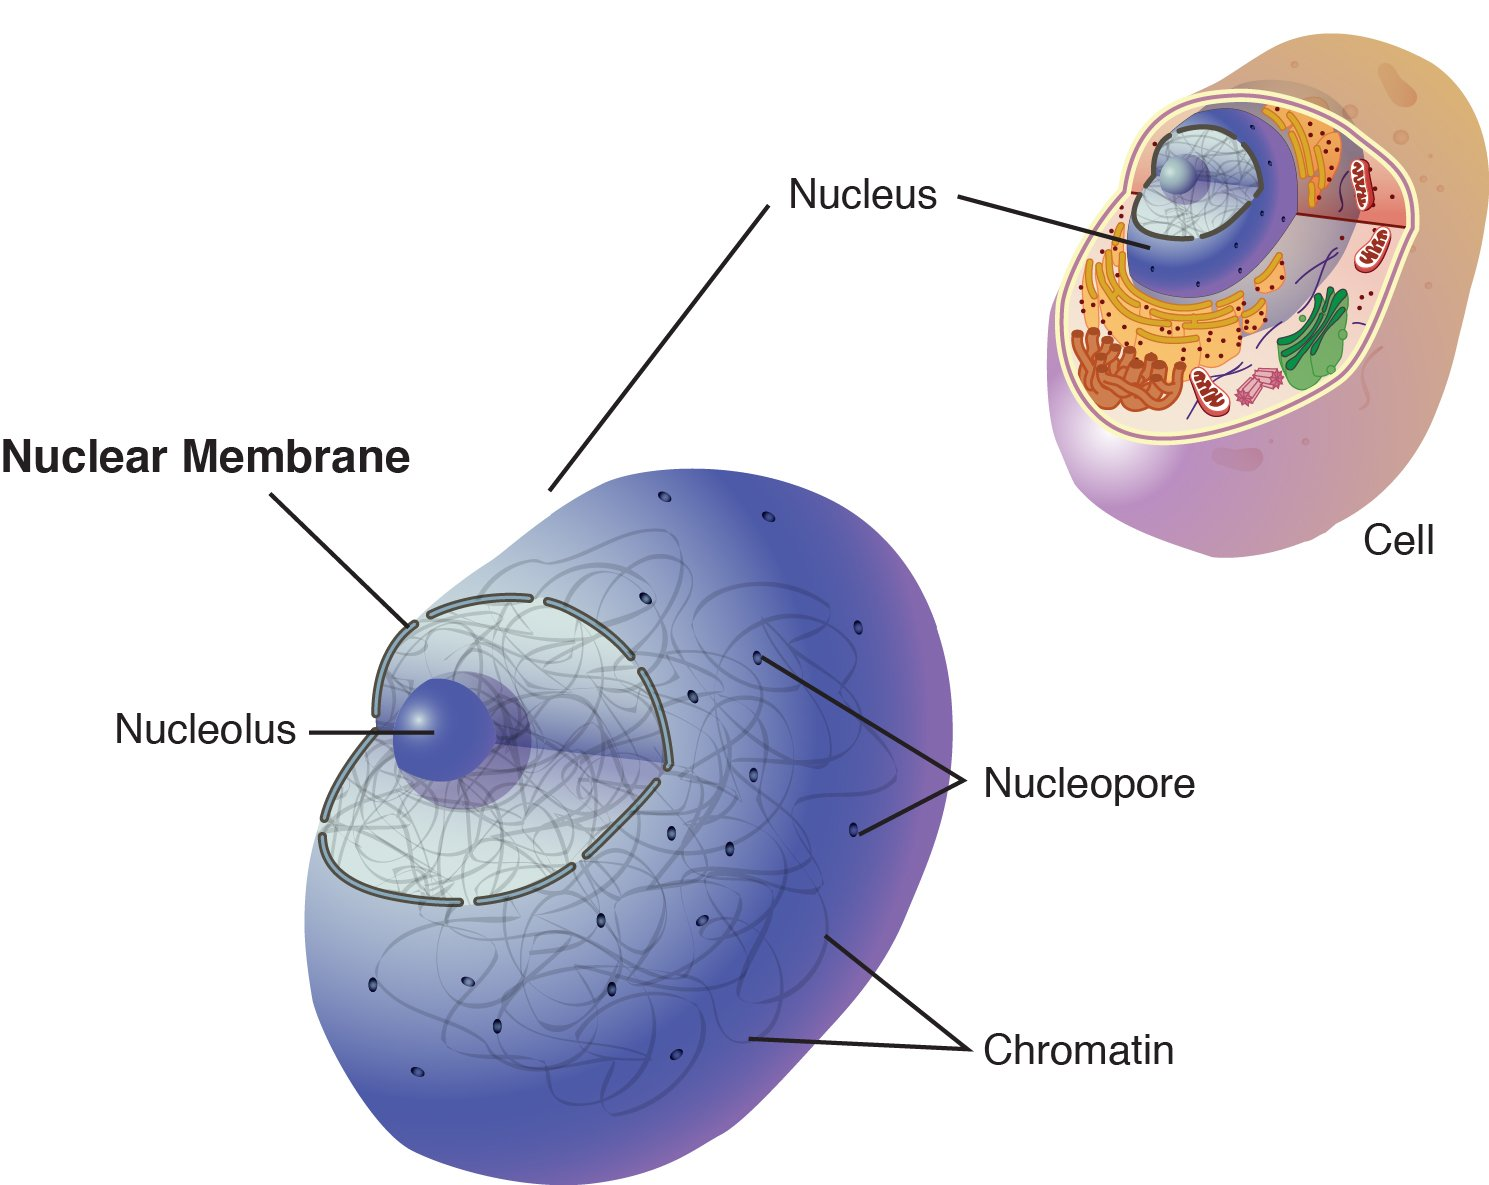 Nuclear membrane national library of medicine pubmed health the nuclear membrane is a double membrane that encloses the cell nucleus ccuart Images